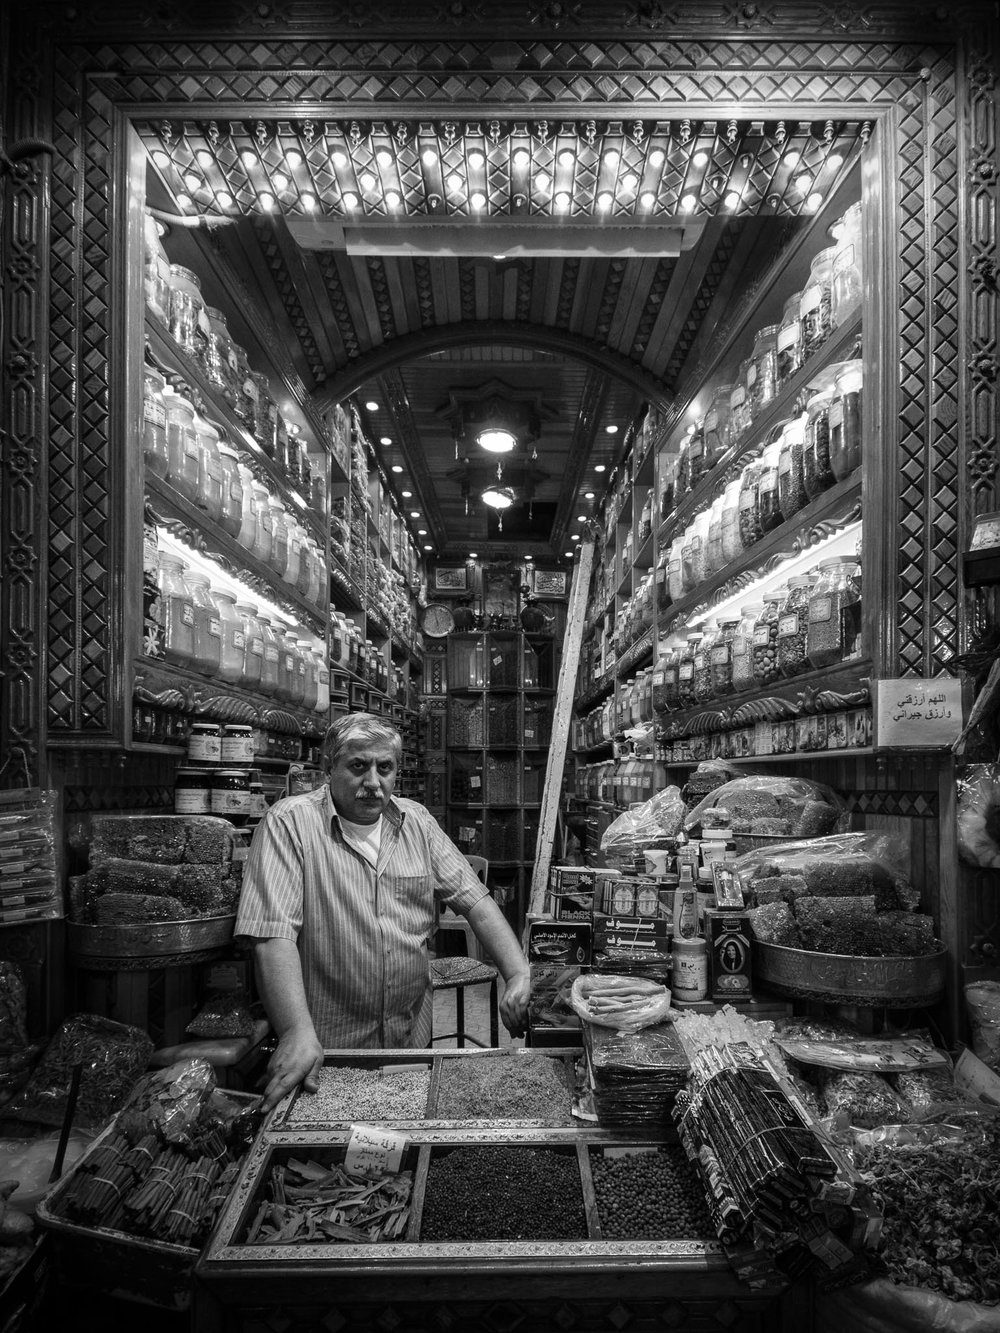 The Spice Merchant (Aleppo)